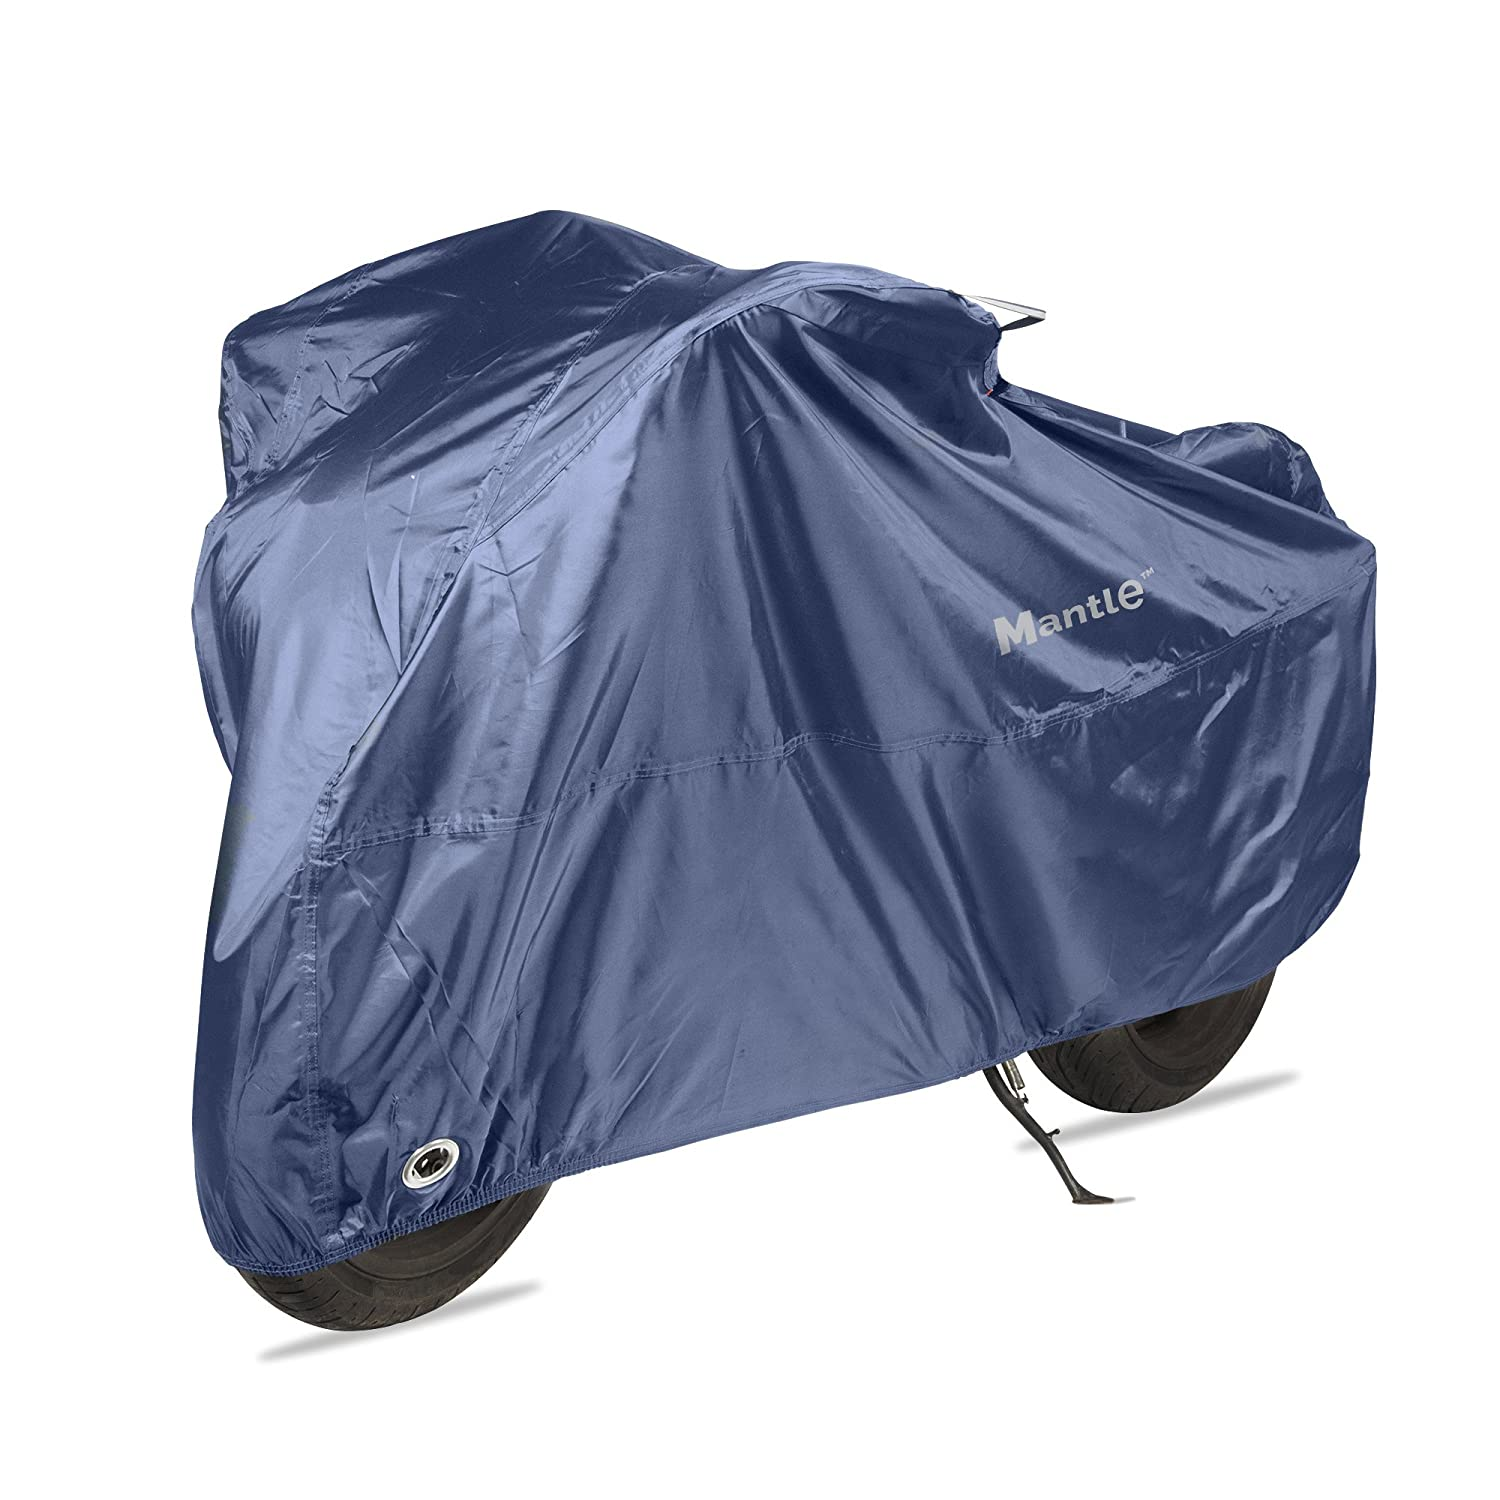 Waterproof Motorbike Cover for Outside Storage, Mantle Heavy duty Motorcycle Rain Covers, 210D Oxford Fabric - Dust, Rust & UV Protection, Air Vents, Wind Buckle, Lock Holes, Silver coat (XL)